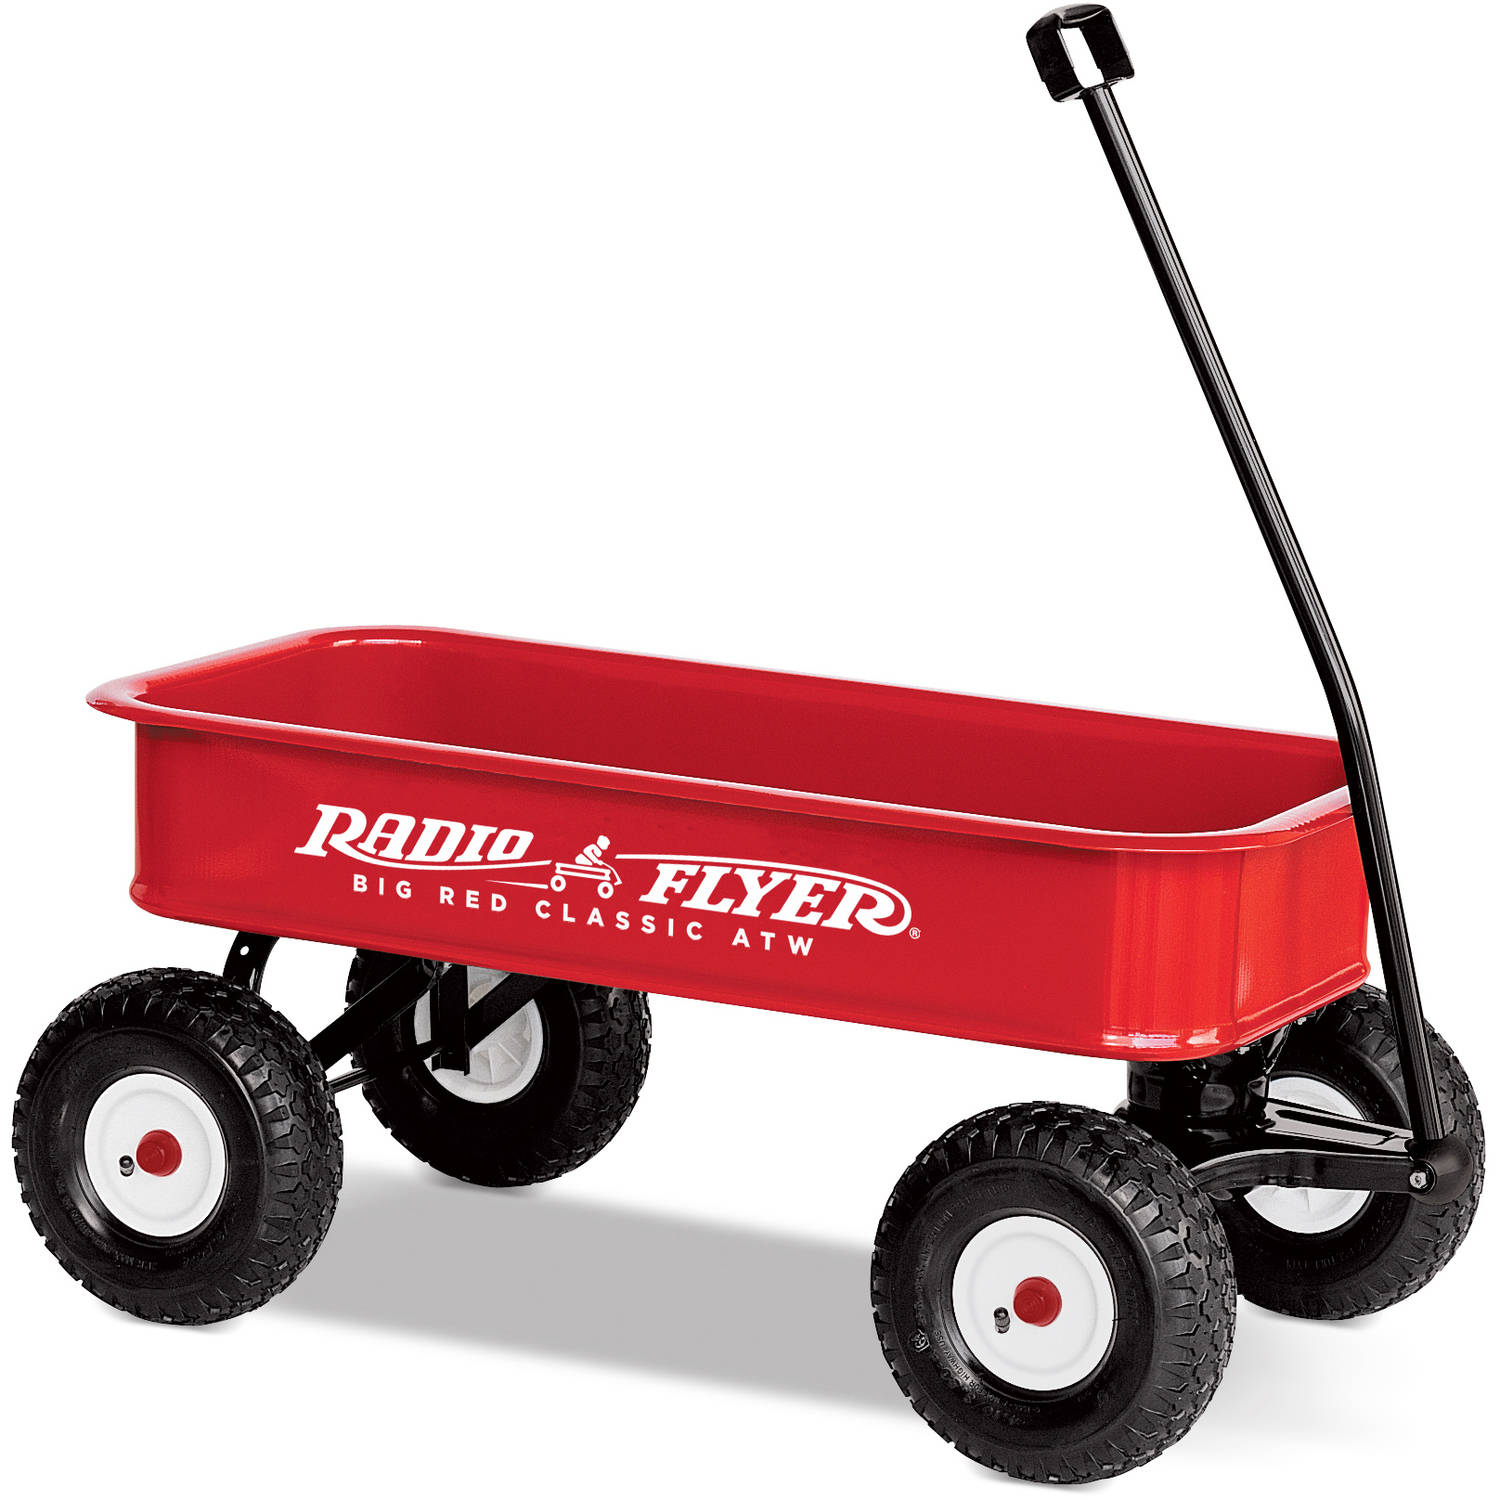 Radio Flyer Big Red Classic ATW Wagon